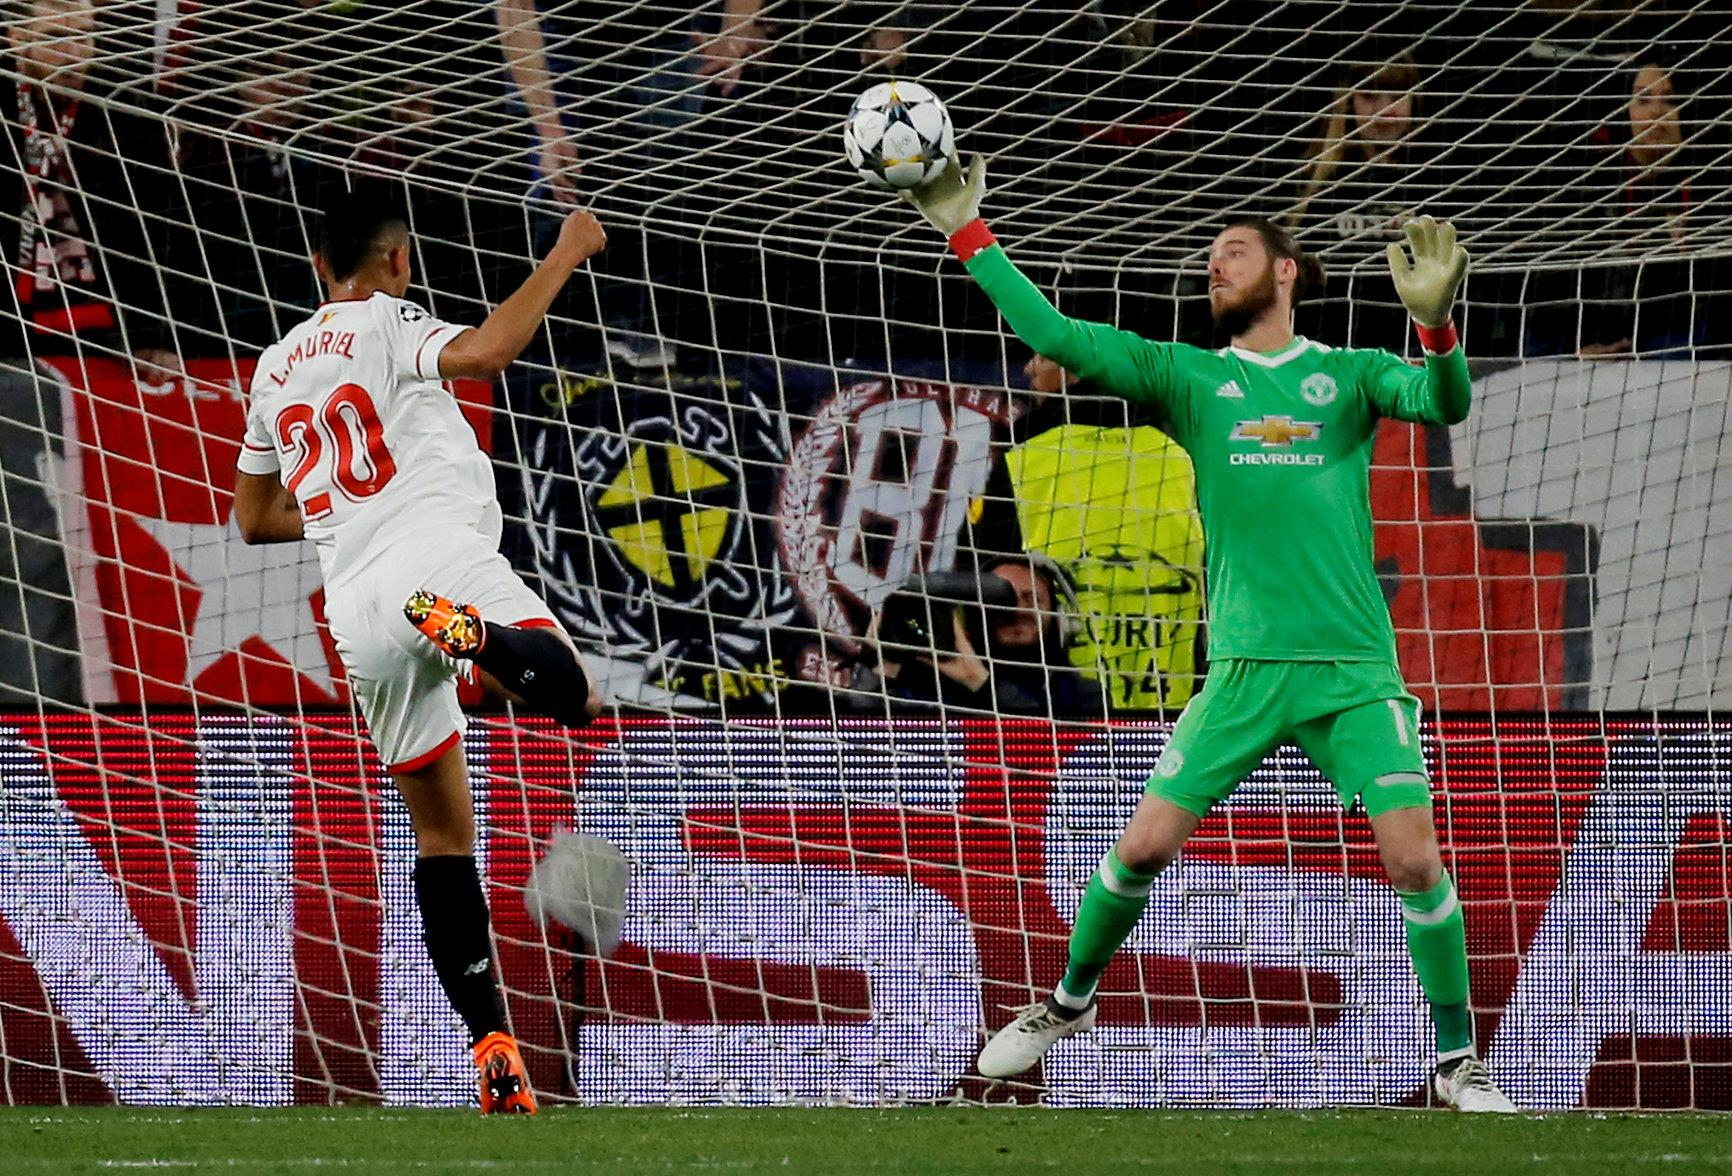 De Gea kept out Muriel with a mind-blowing stop in the Champions League